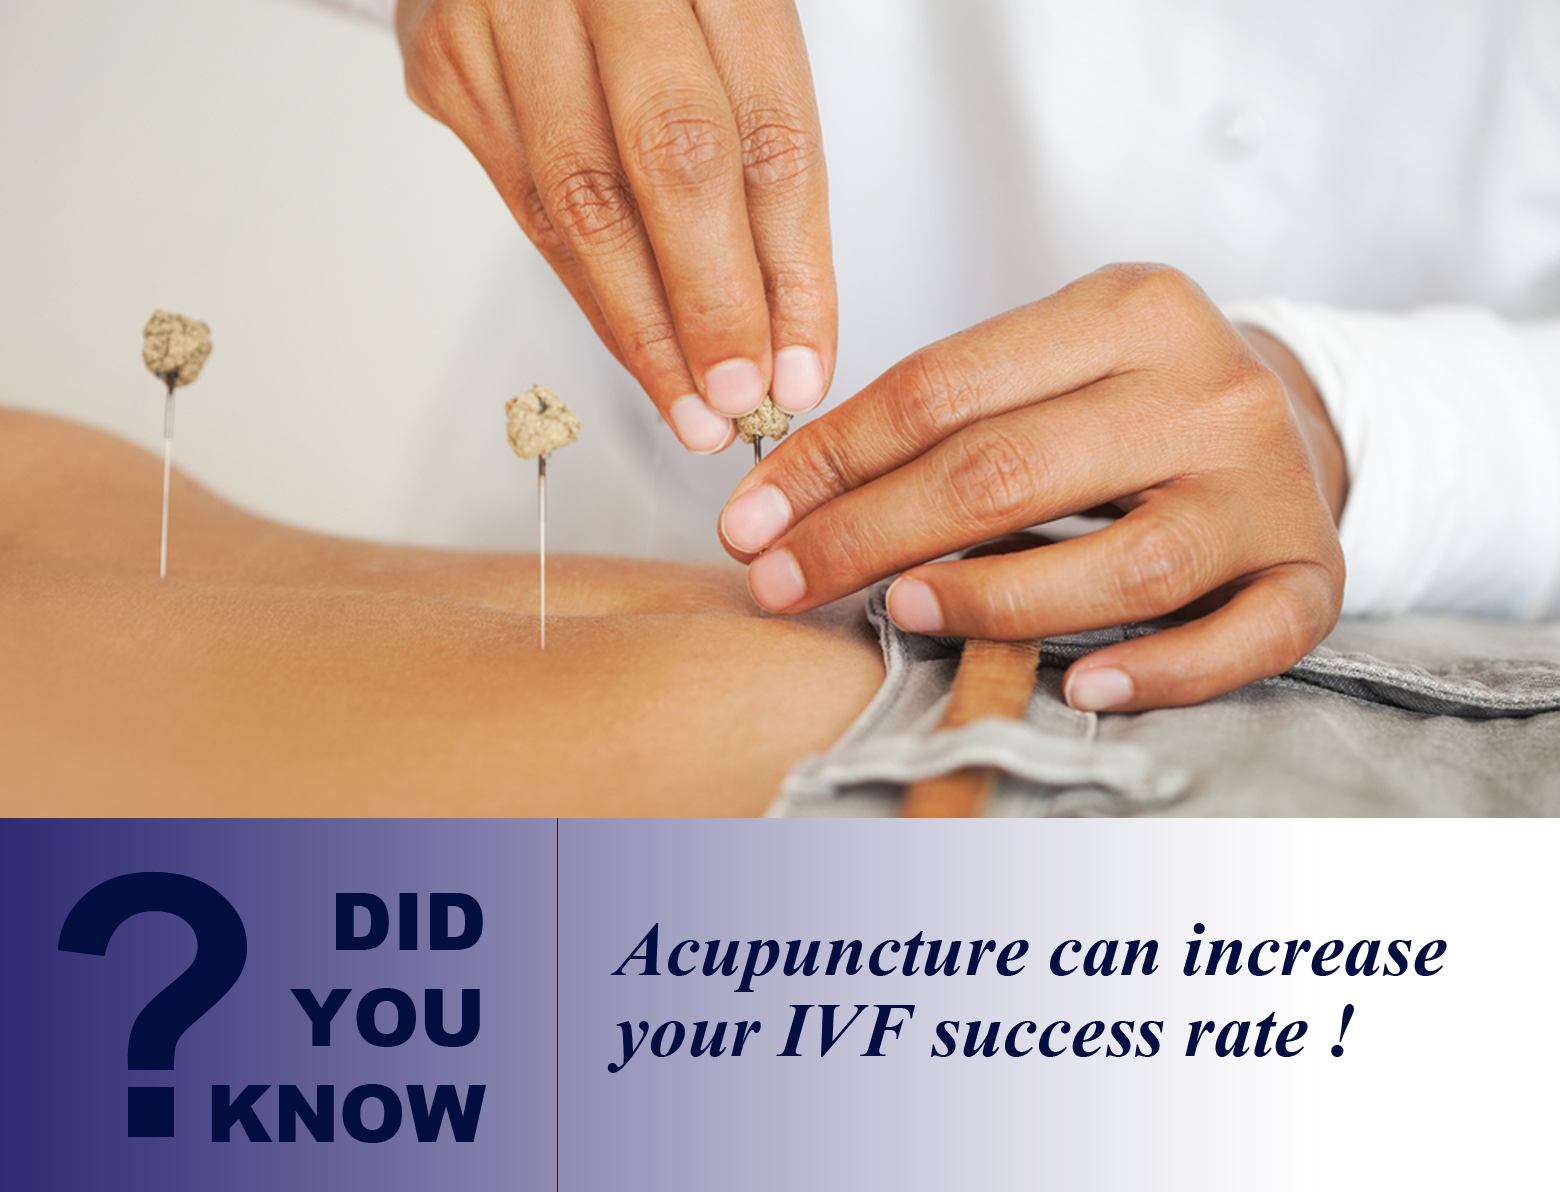 Could acupuncture success be all in the mind